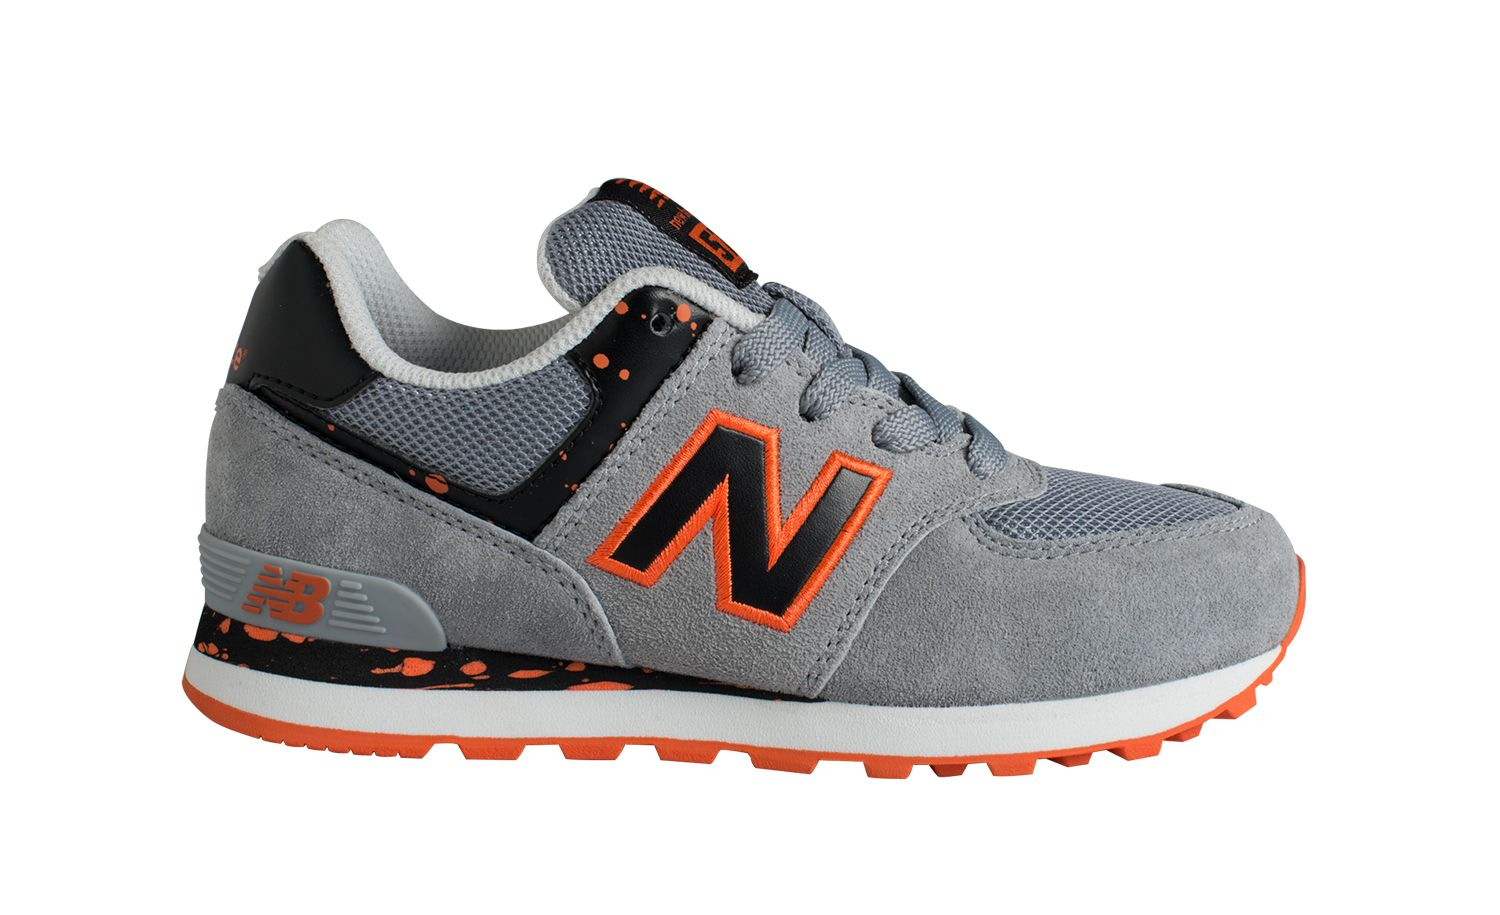 New Balance 574 Speckled